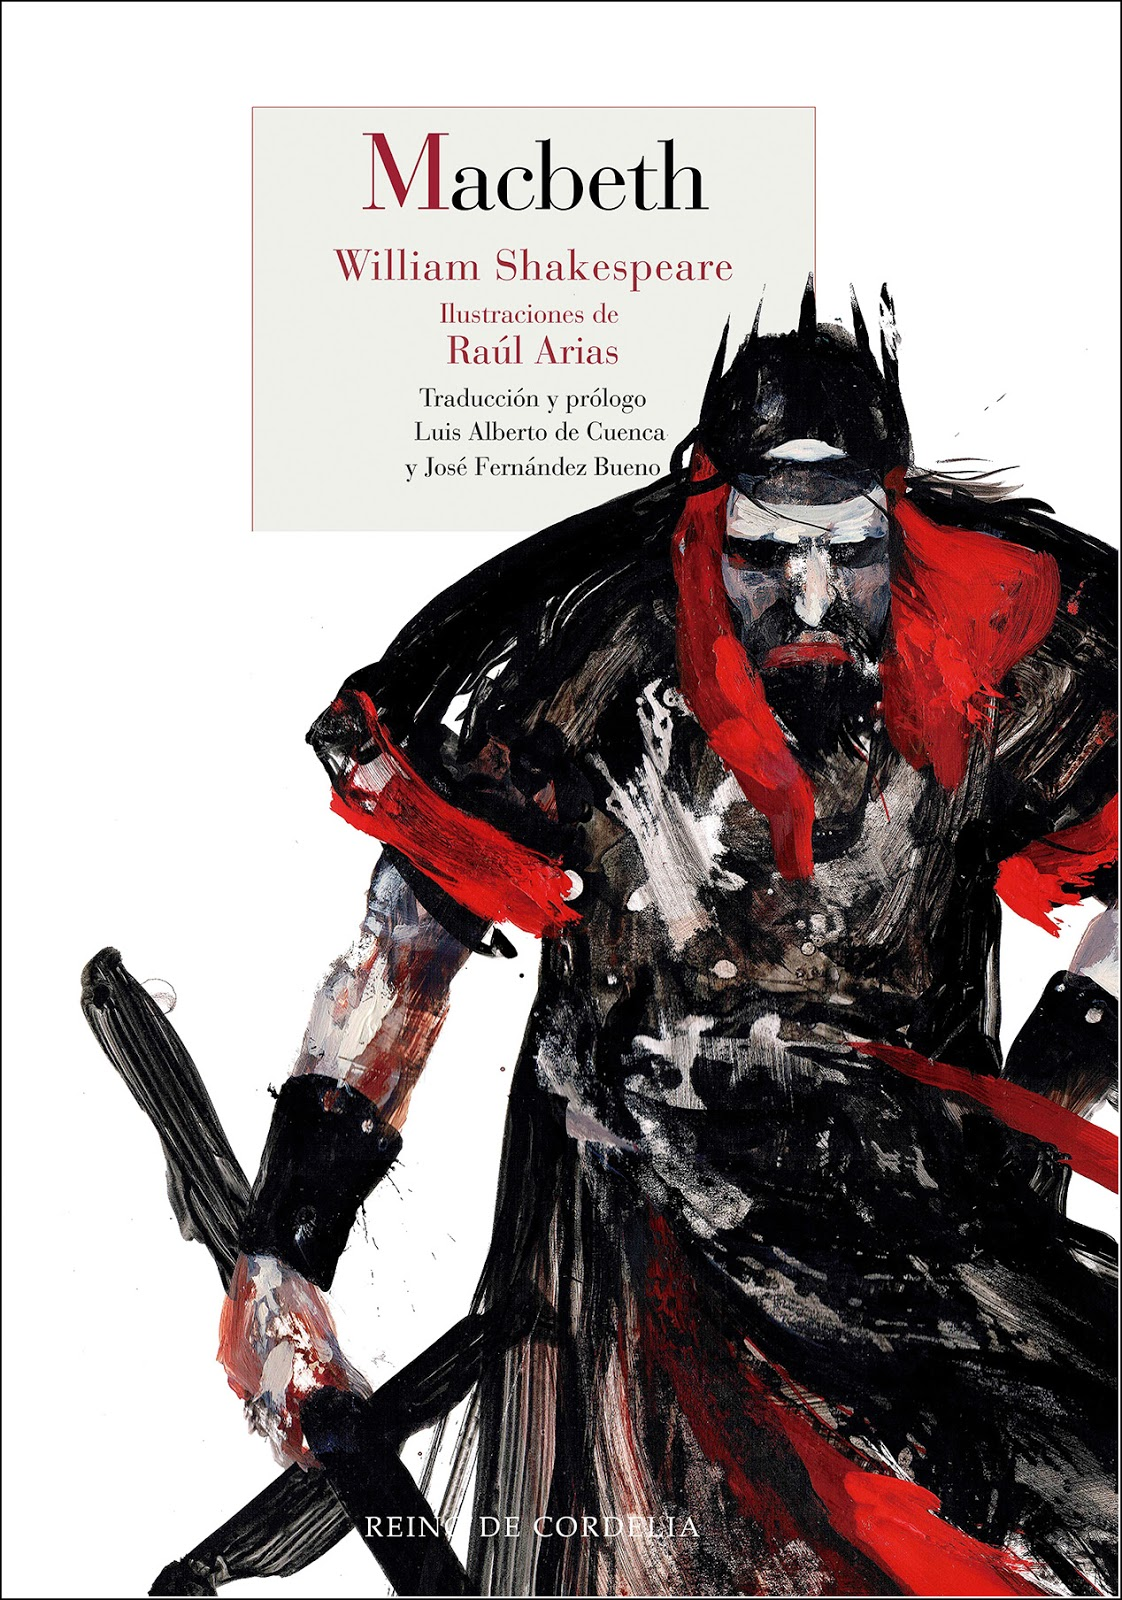 history of the work of william shakespeare and the play macbeth The tragedy of macbeth will forever be recognized as one of william shakespeare's greatest plays like many of his historical plays, shakespeare used the holinshed's chronicles, as a source for the plot of macbeth the play centers a regicide and the aftermath by the accounts of king macbeth of scotland, macduff, and duncan i of.